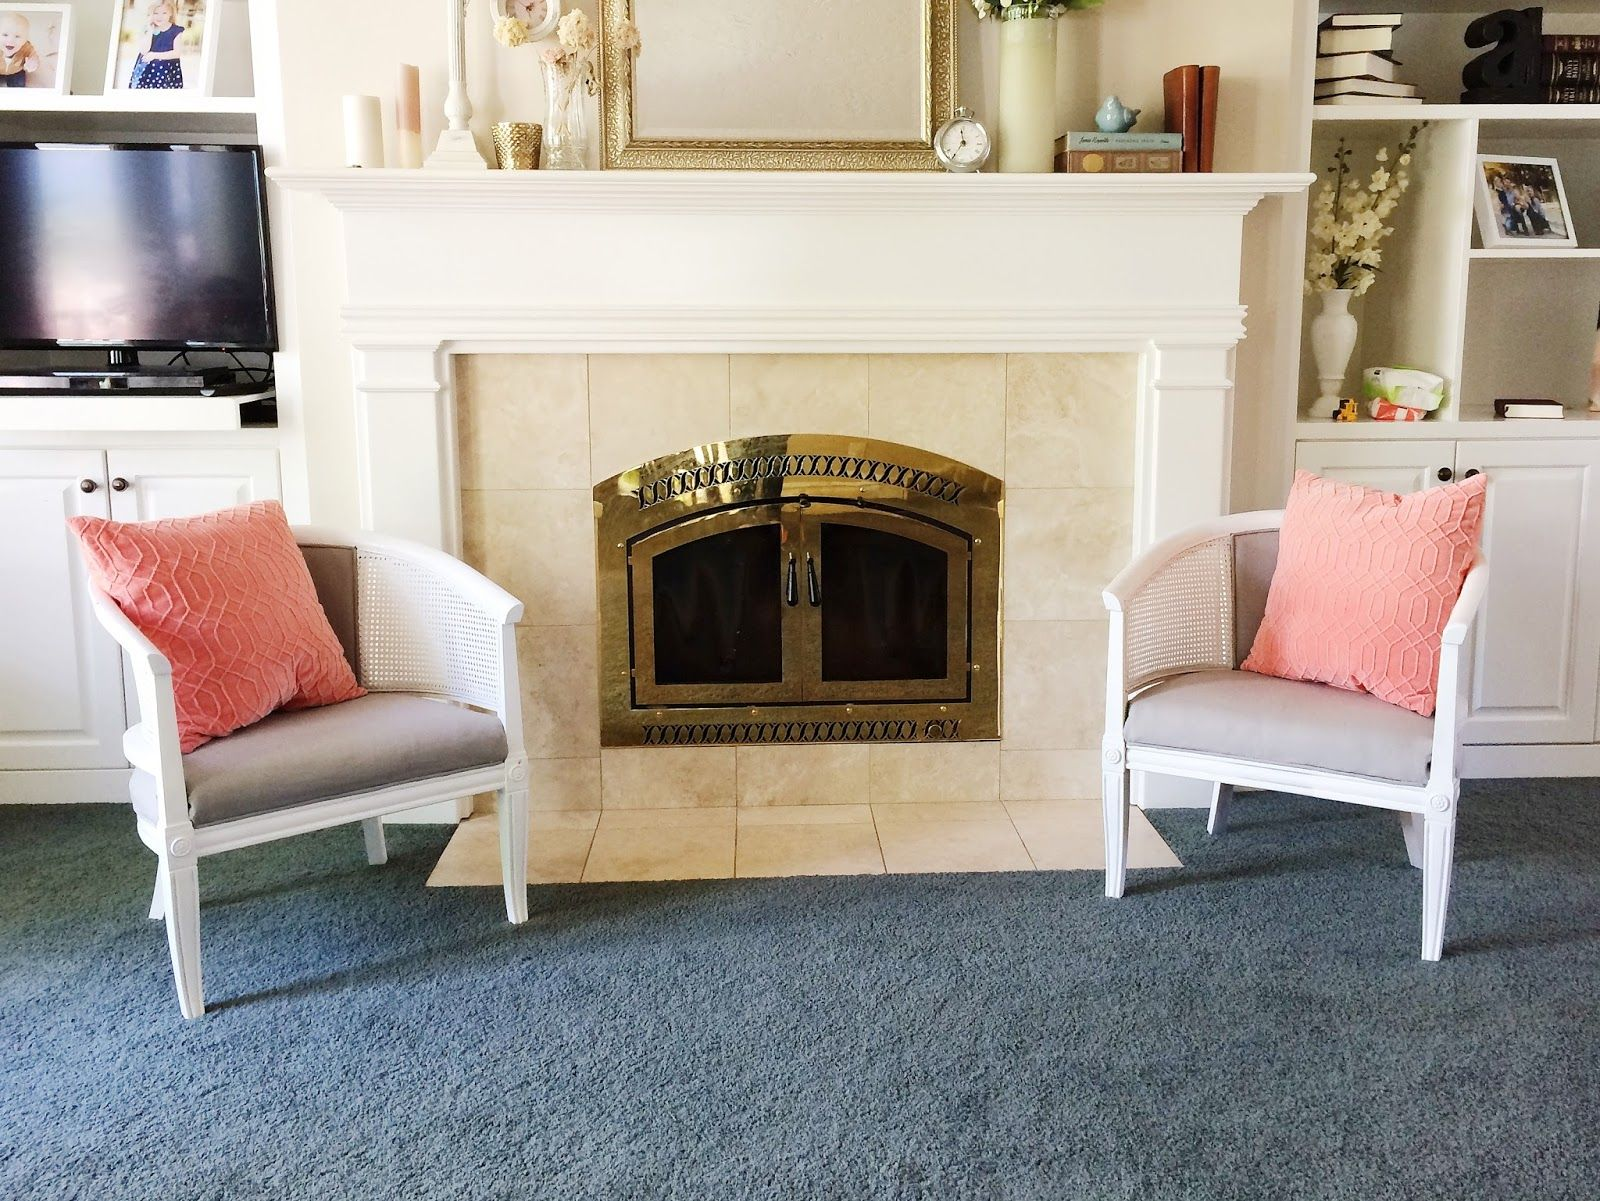 Wicker chairs painted in white in front of fireplace